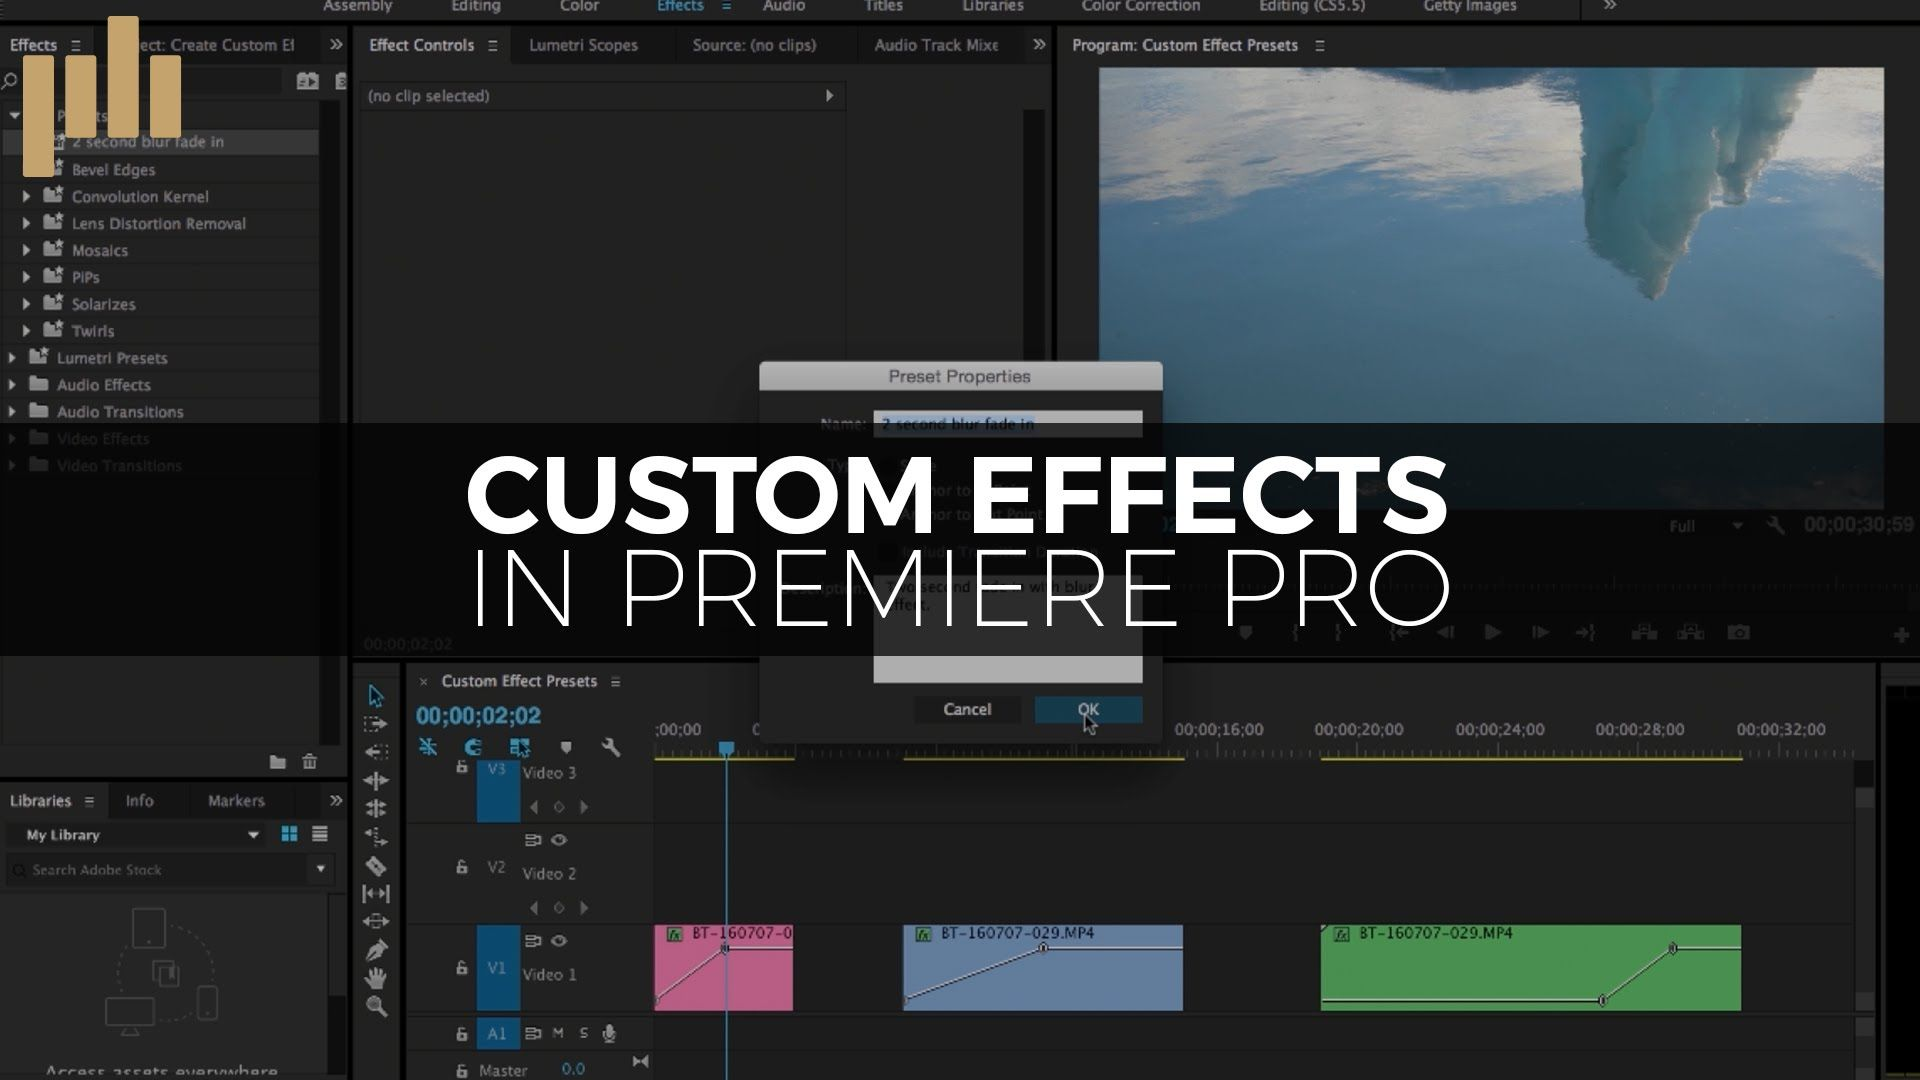 Easily save and share your Premiere Pro presets with this helpful